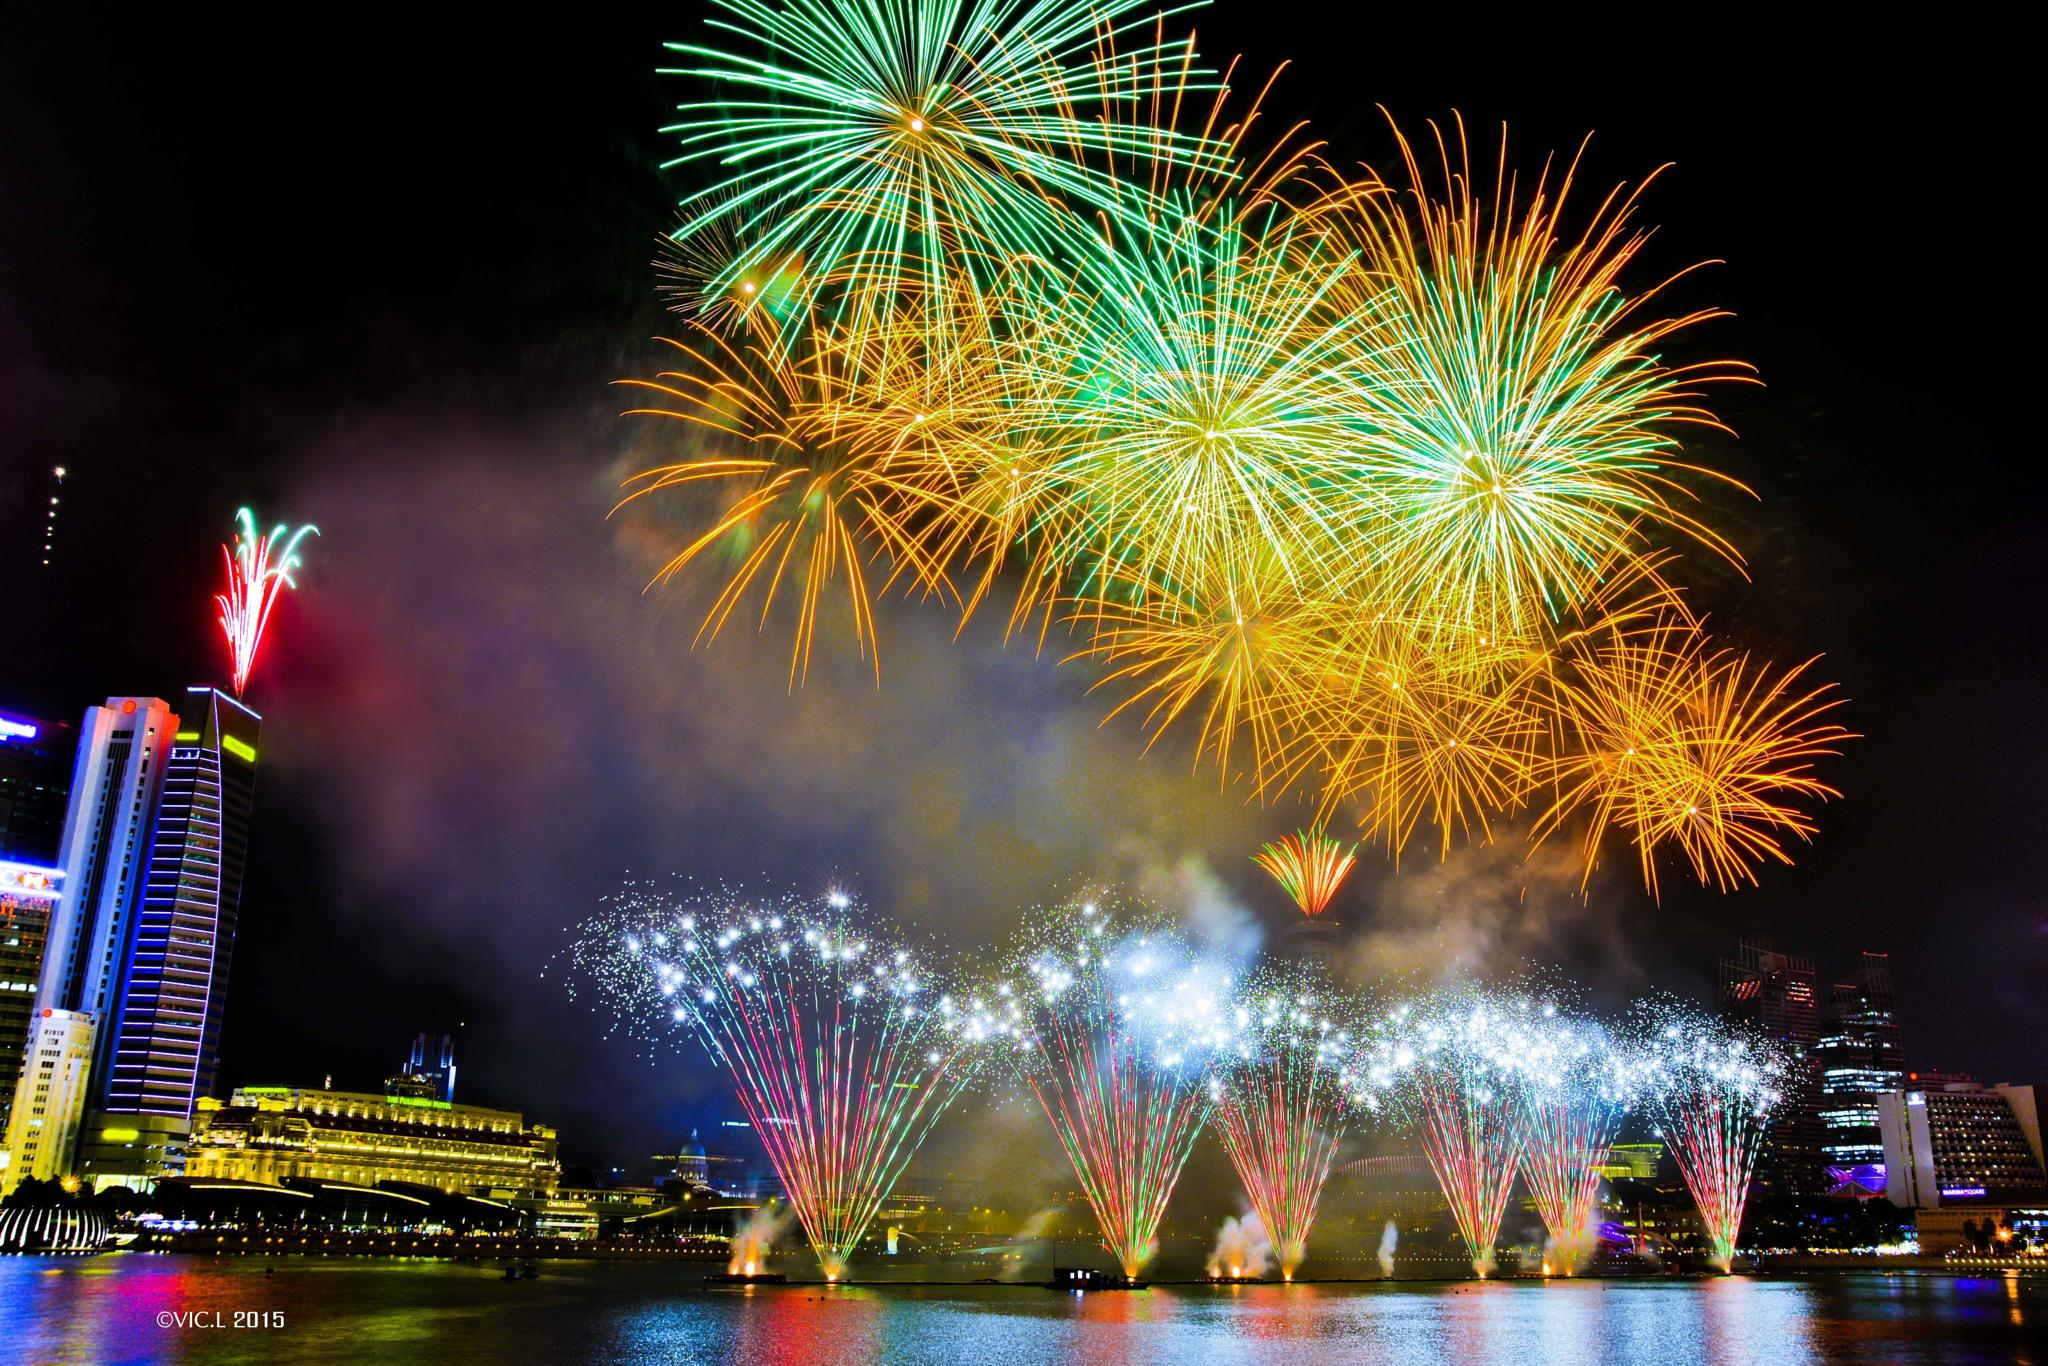 Fireworks by VIC.L